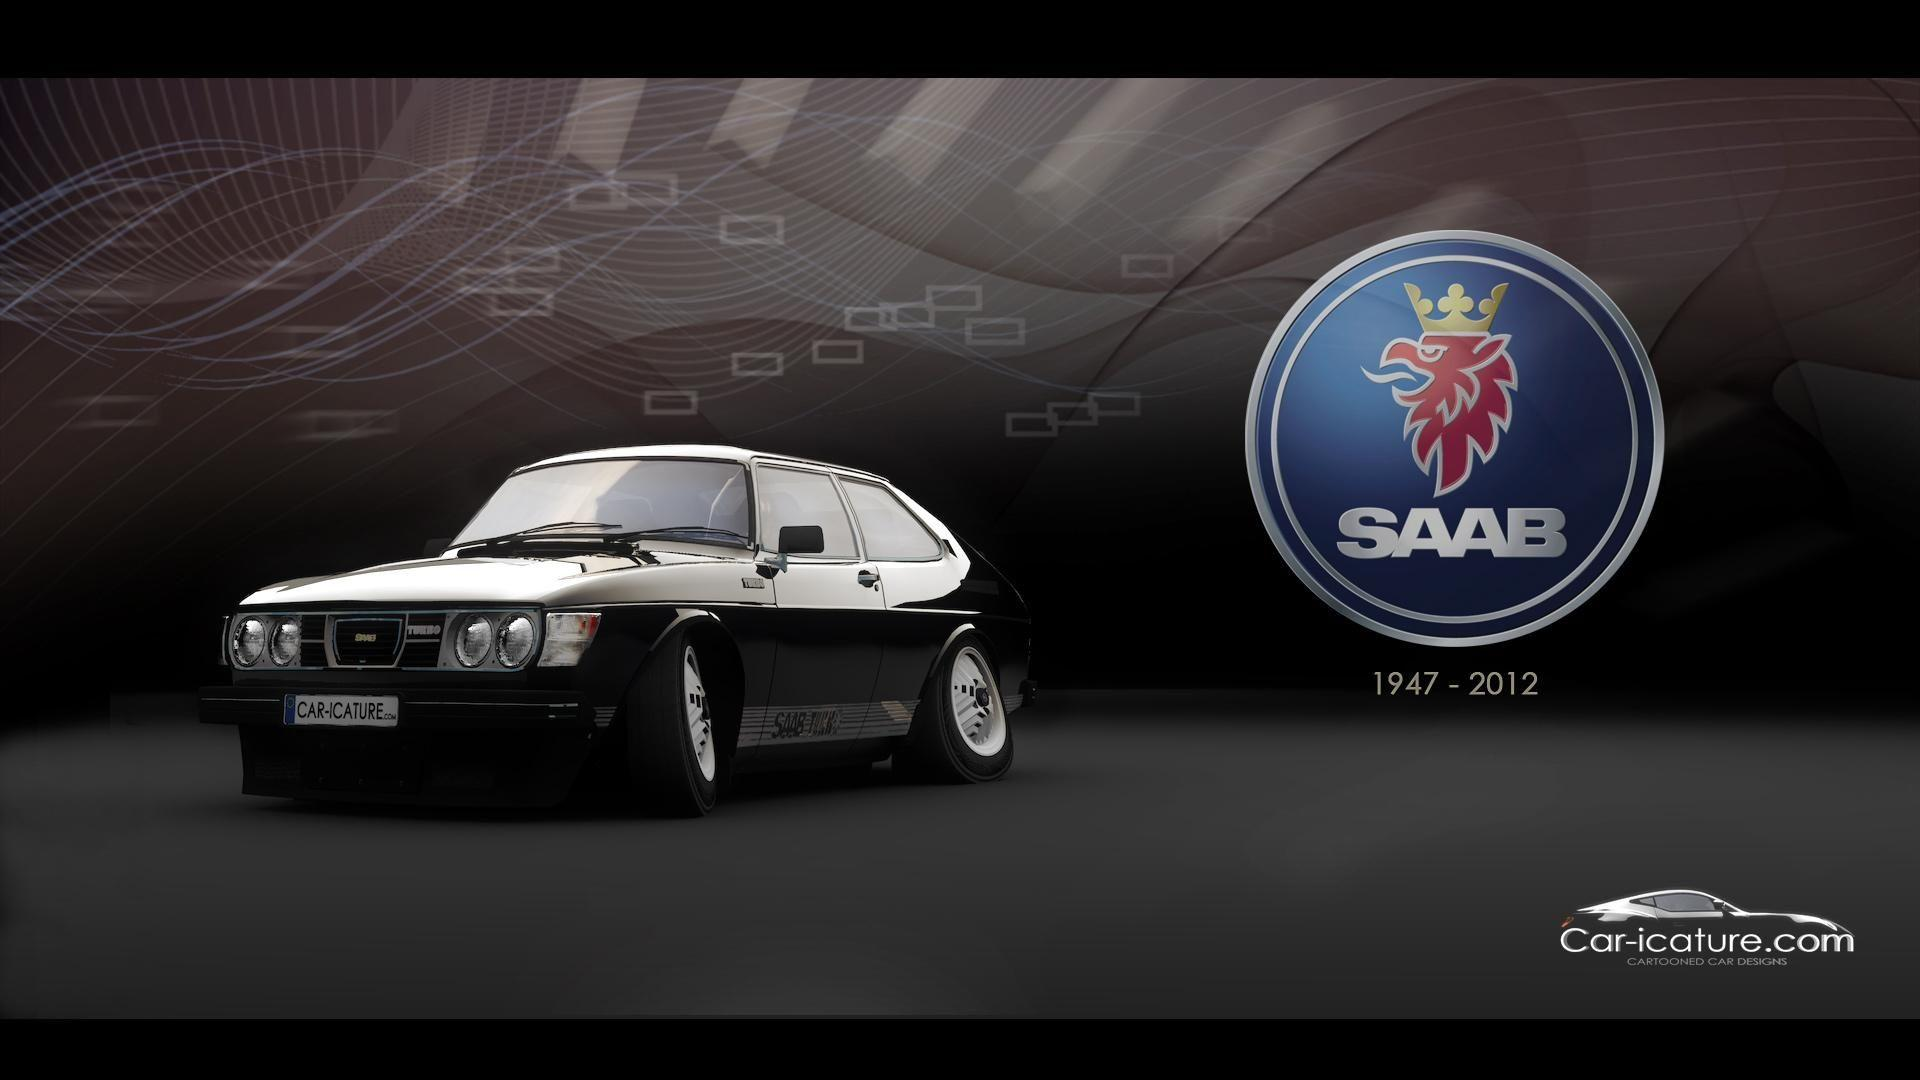 48 Saab Gallery of Wallpapers | Free Download For Android, Desktop ...